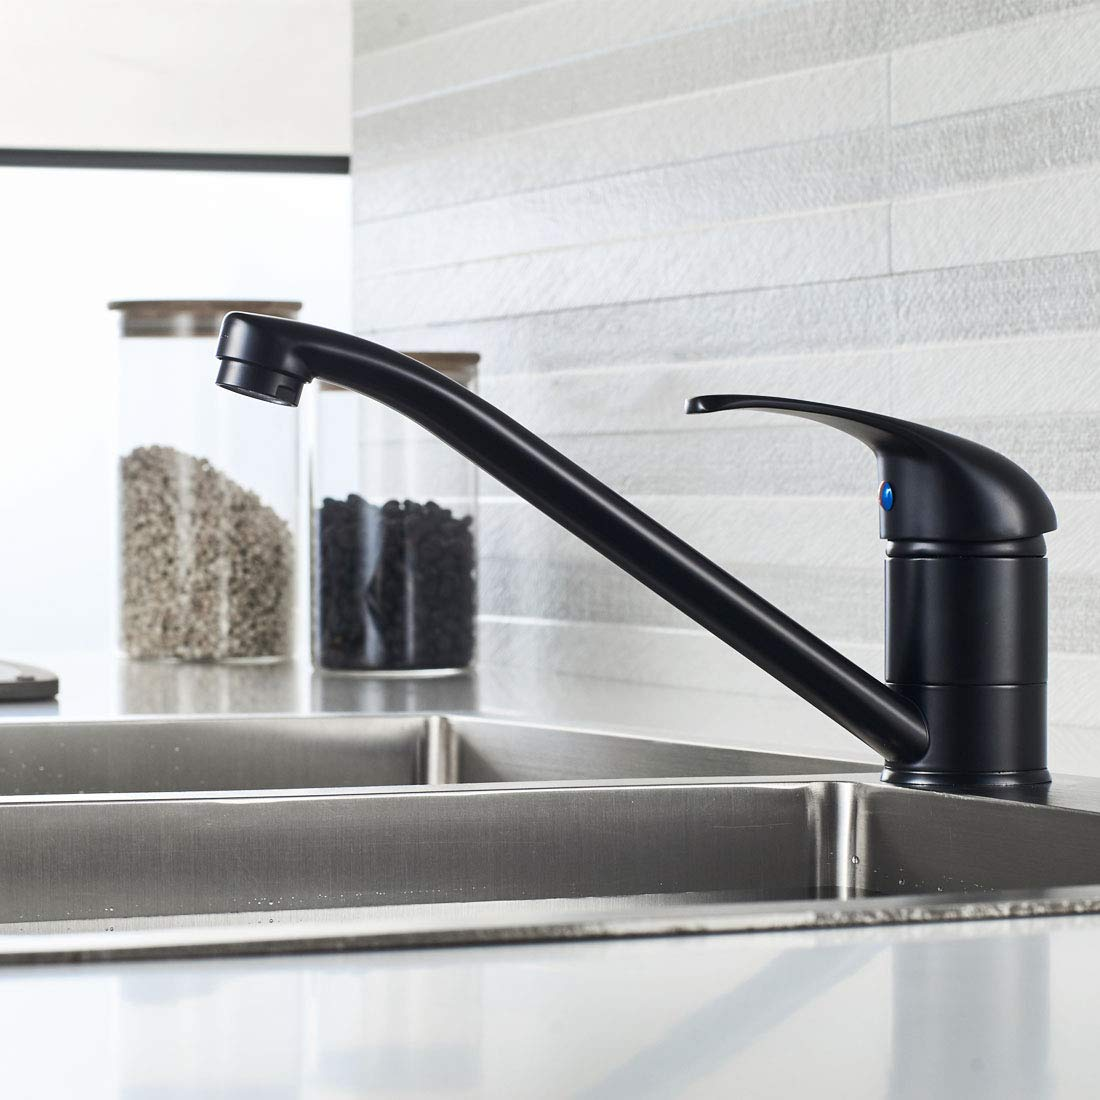 Luckyhome Kitchen Sink Mixer tap Contemporary Chrome Finish Swivel Body Brass Fitting Monobloc Single Lever Faucet